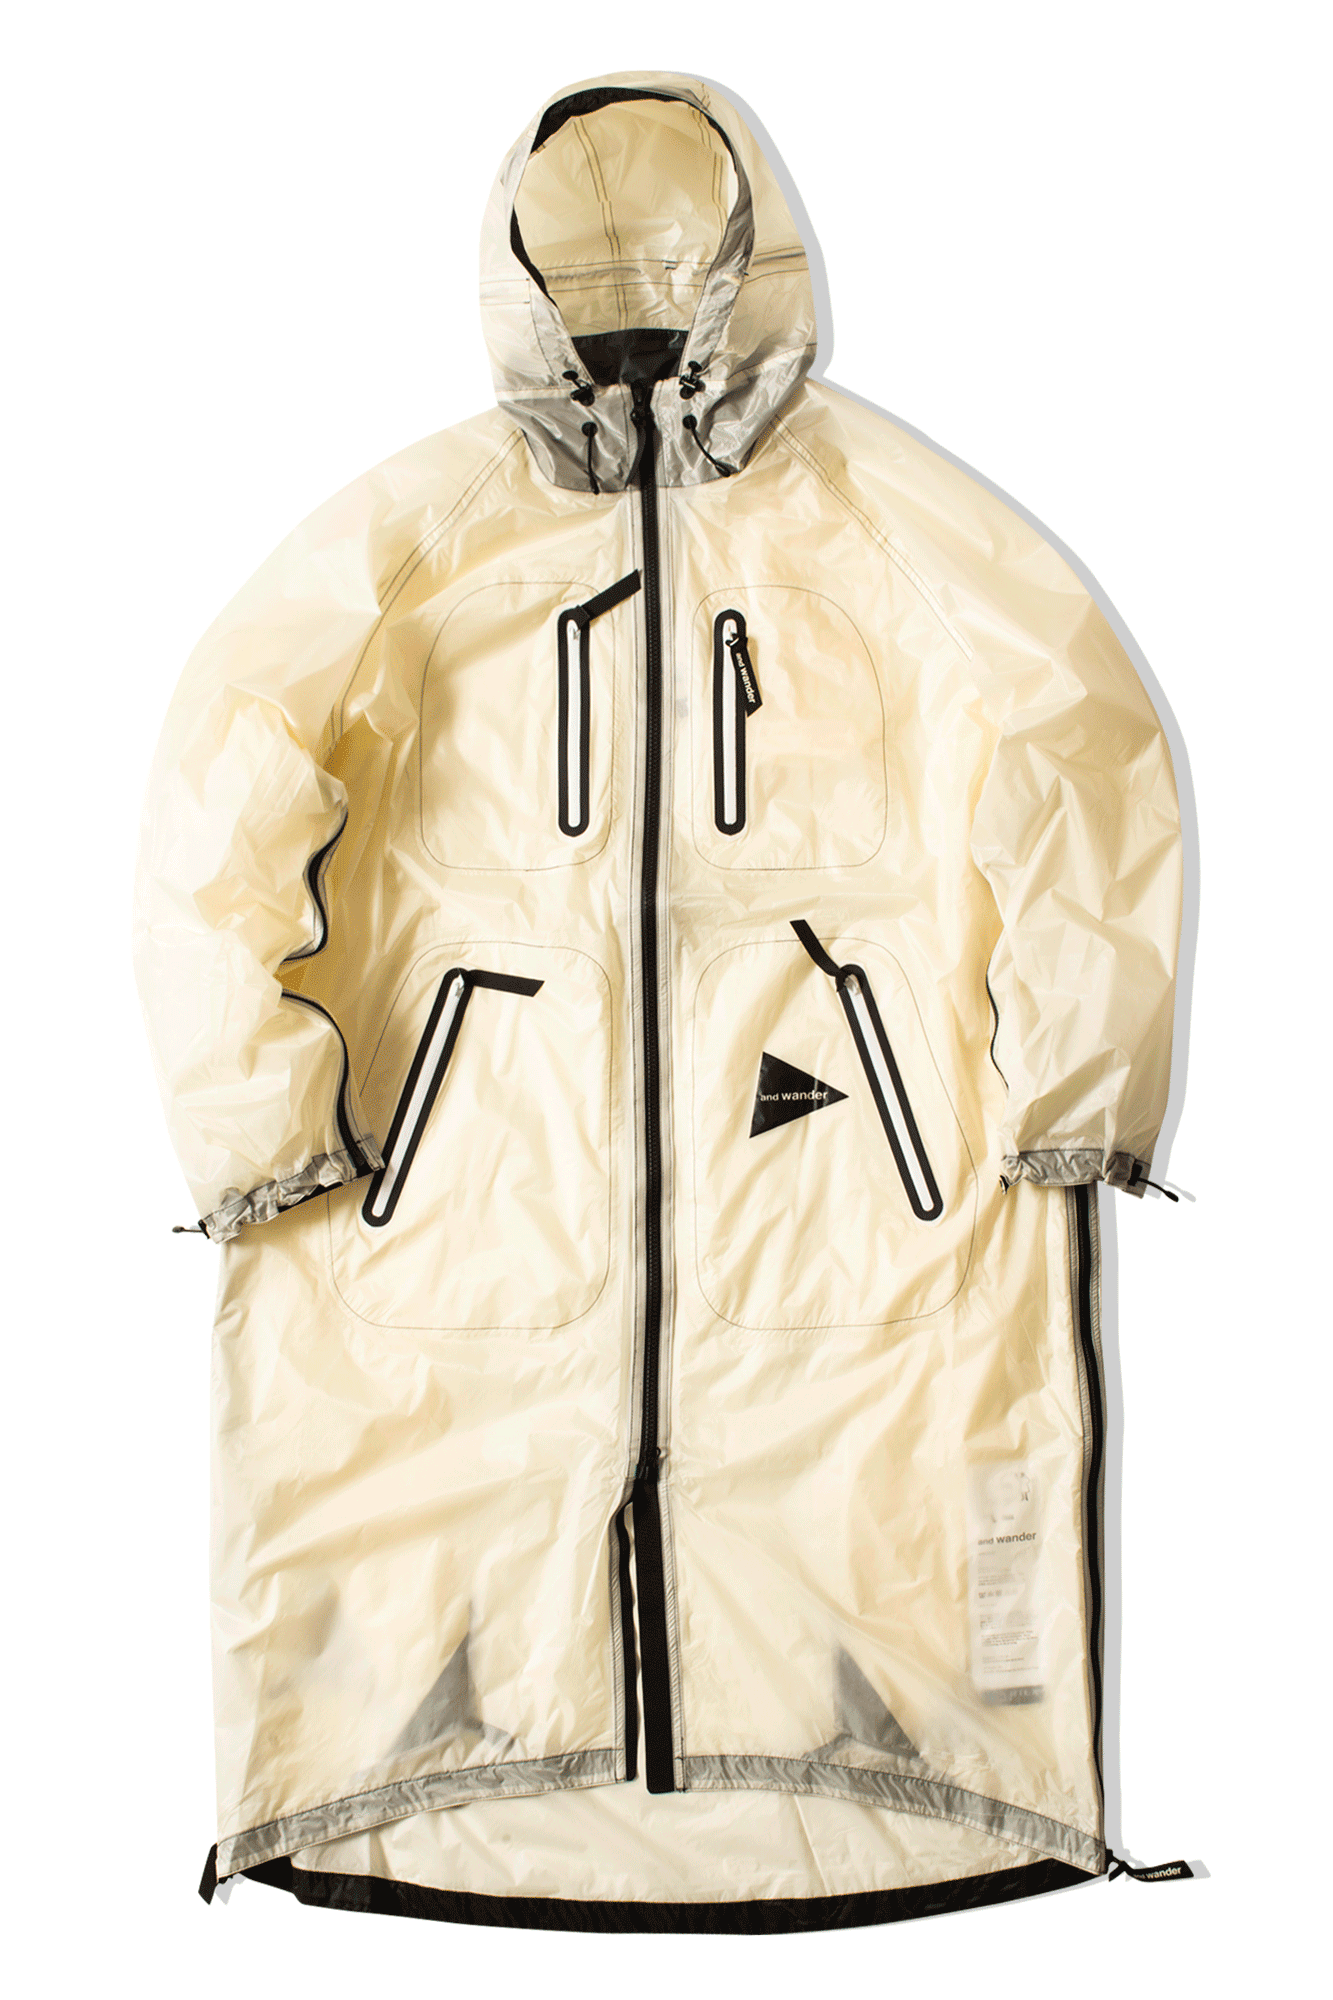 And Wander Coats & Jackets Fly Rain Coat White AW91-FT003#000#WHT#0 - One Block Down